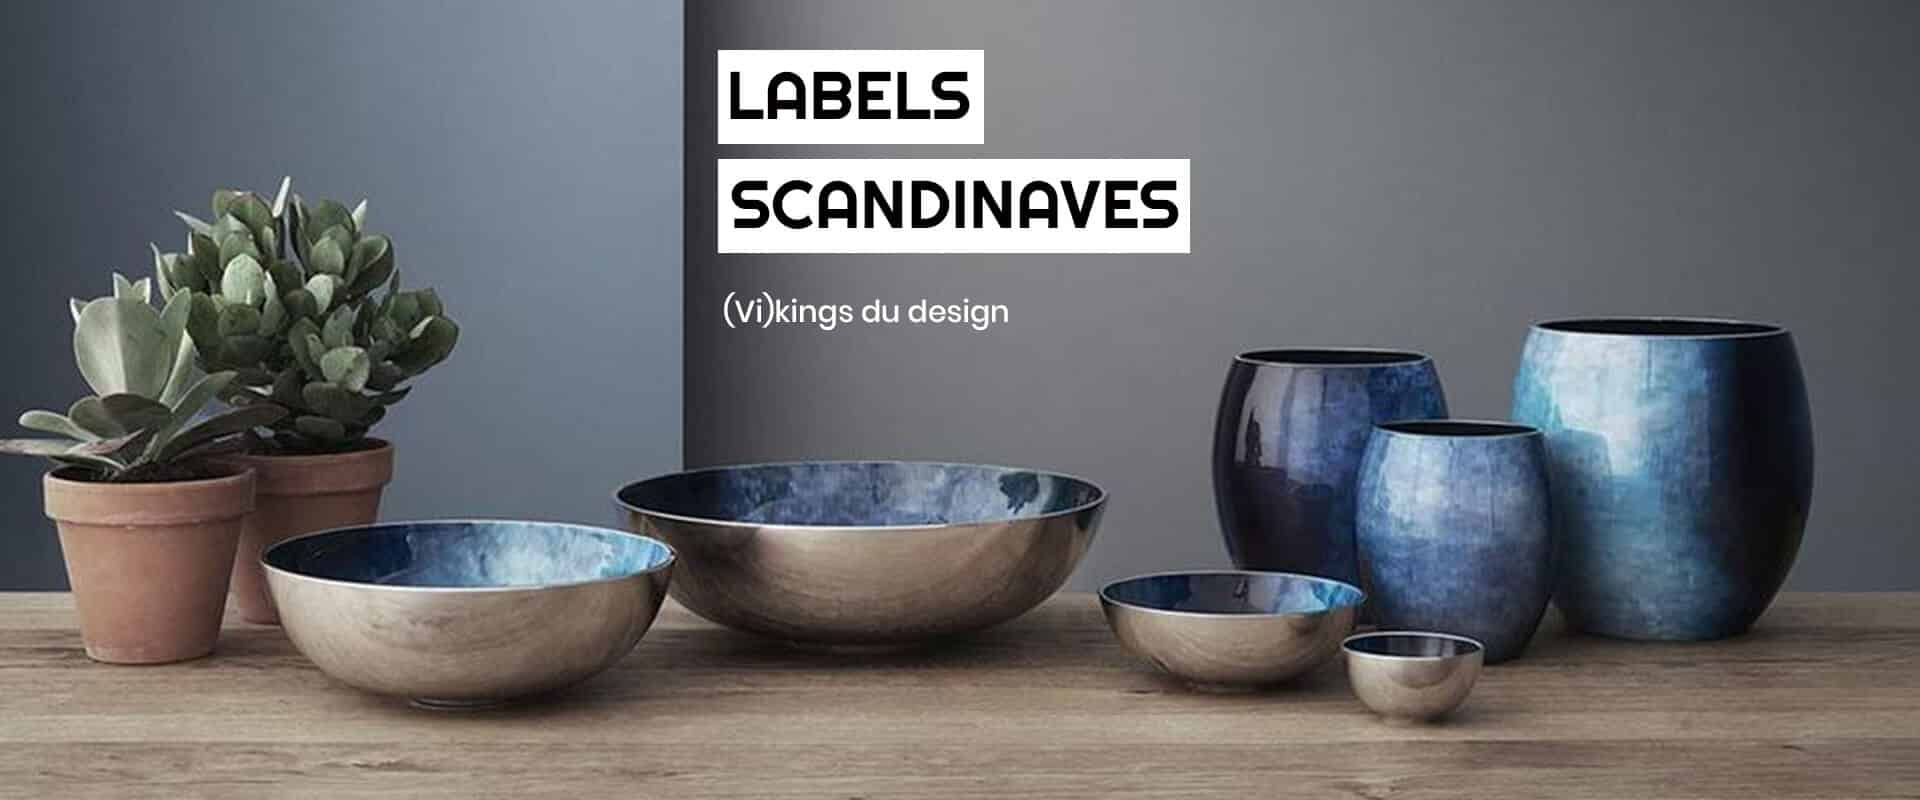 design scandinave zeeloft